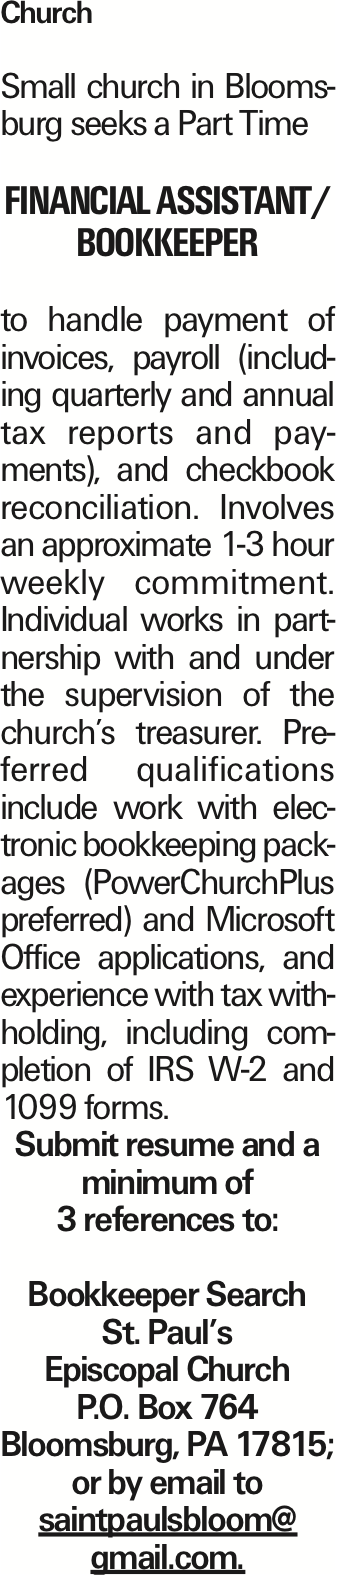 Church Small church in Bloomsburg seeks a Part Time Financial Assistant/ Bookkeeper to handle payment of invoices, payroll (including quarterly and annual tax reports and payments), and checkbook reconciliation. Involves an approximate 1-3 hour weekly commitment. Individual works in partnership with and under the supervision of the church's treasurer. Preferred qualifications include work with electronic bookkeeping packages (PowerChurchPlus preferred) and Microsoft Office applications, and experience with tax withholding, including completion of IRS W-2 and 1099 forms. Submit resume and a minimum of 3 references to: Bookkeeper Search St. Paul's Episcopal Church P.O. Box 764 Bloomsburg, PA 17815; or by email to saintpaulsbloom@ gmail.com. As published in the Press Enterprise.